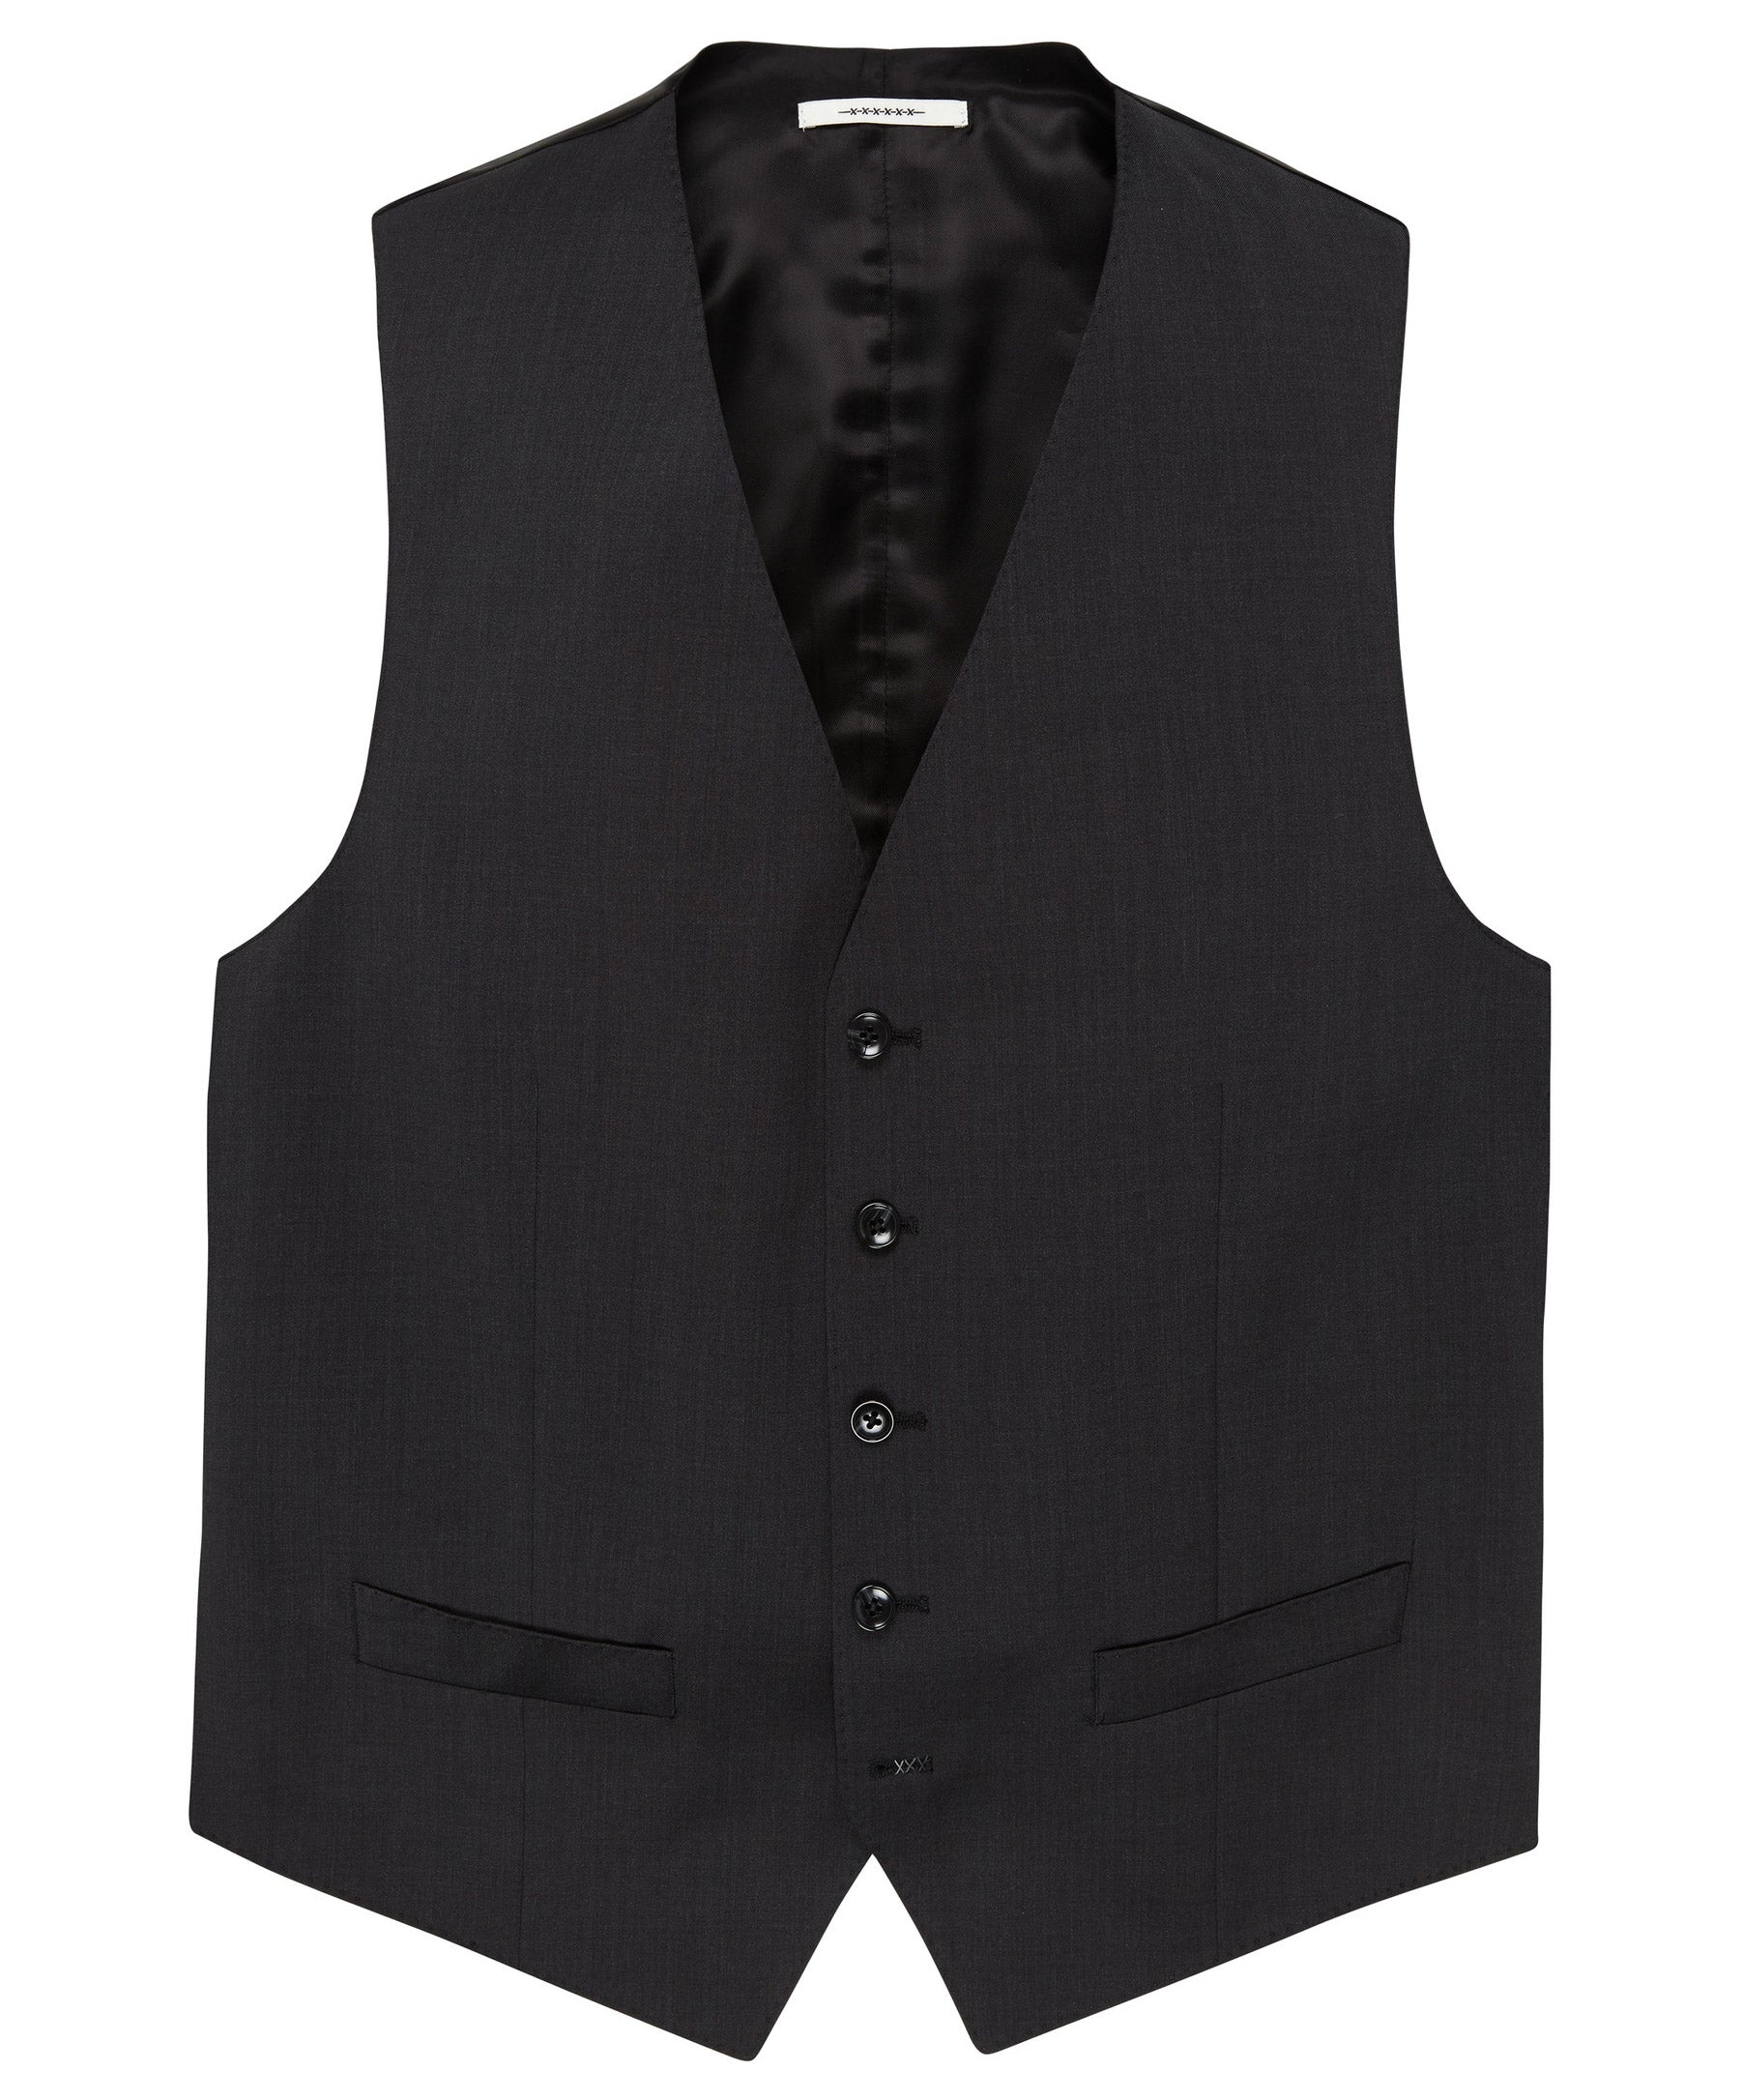 Evion Charcoal Solid Vest